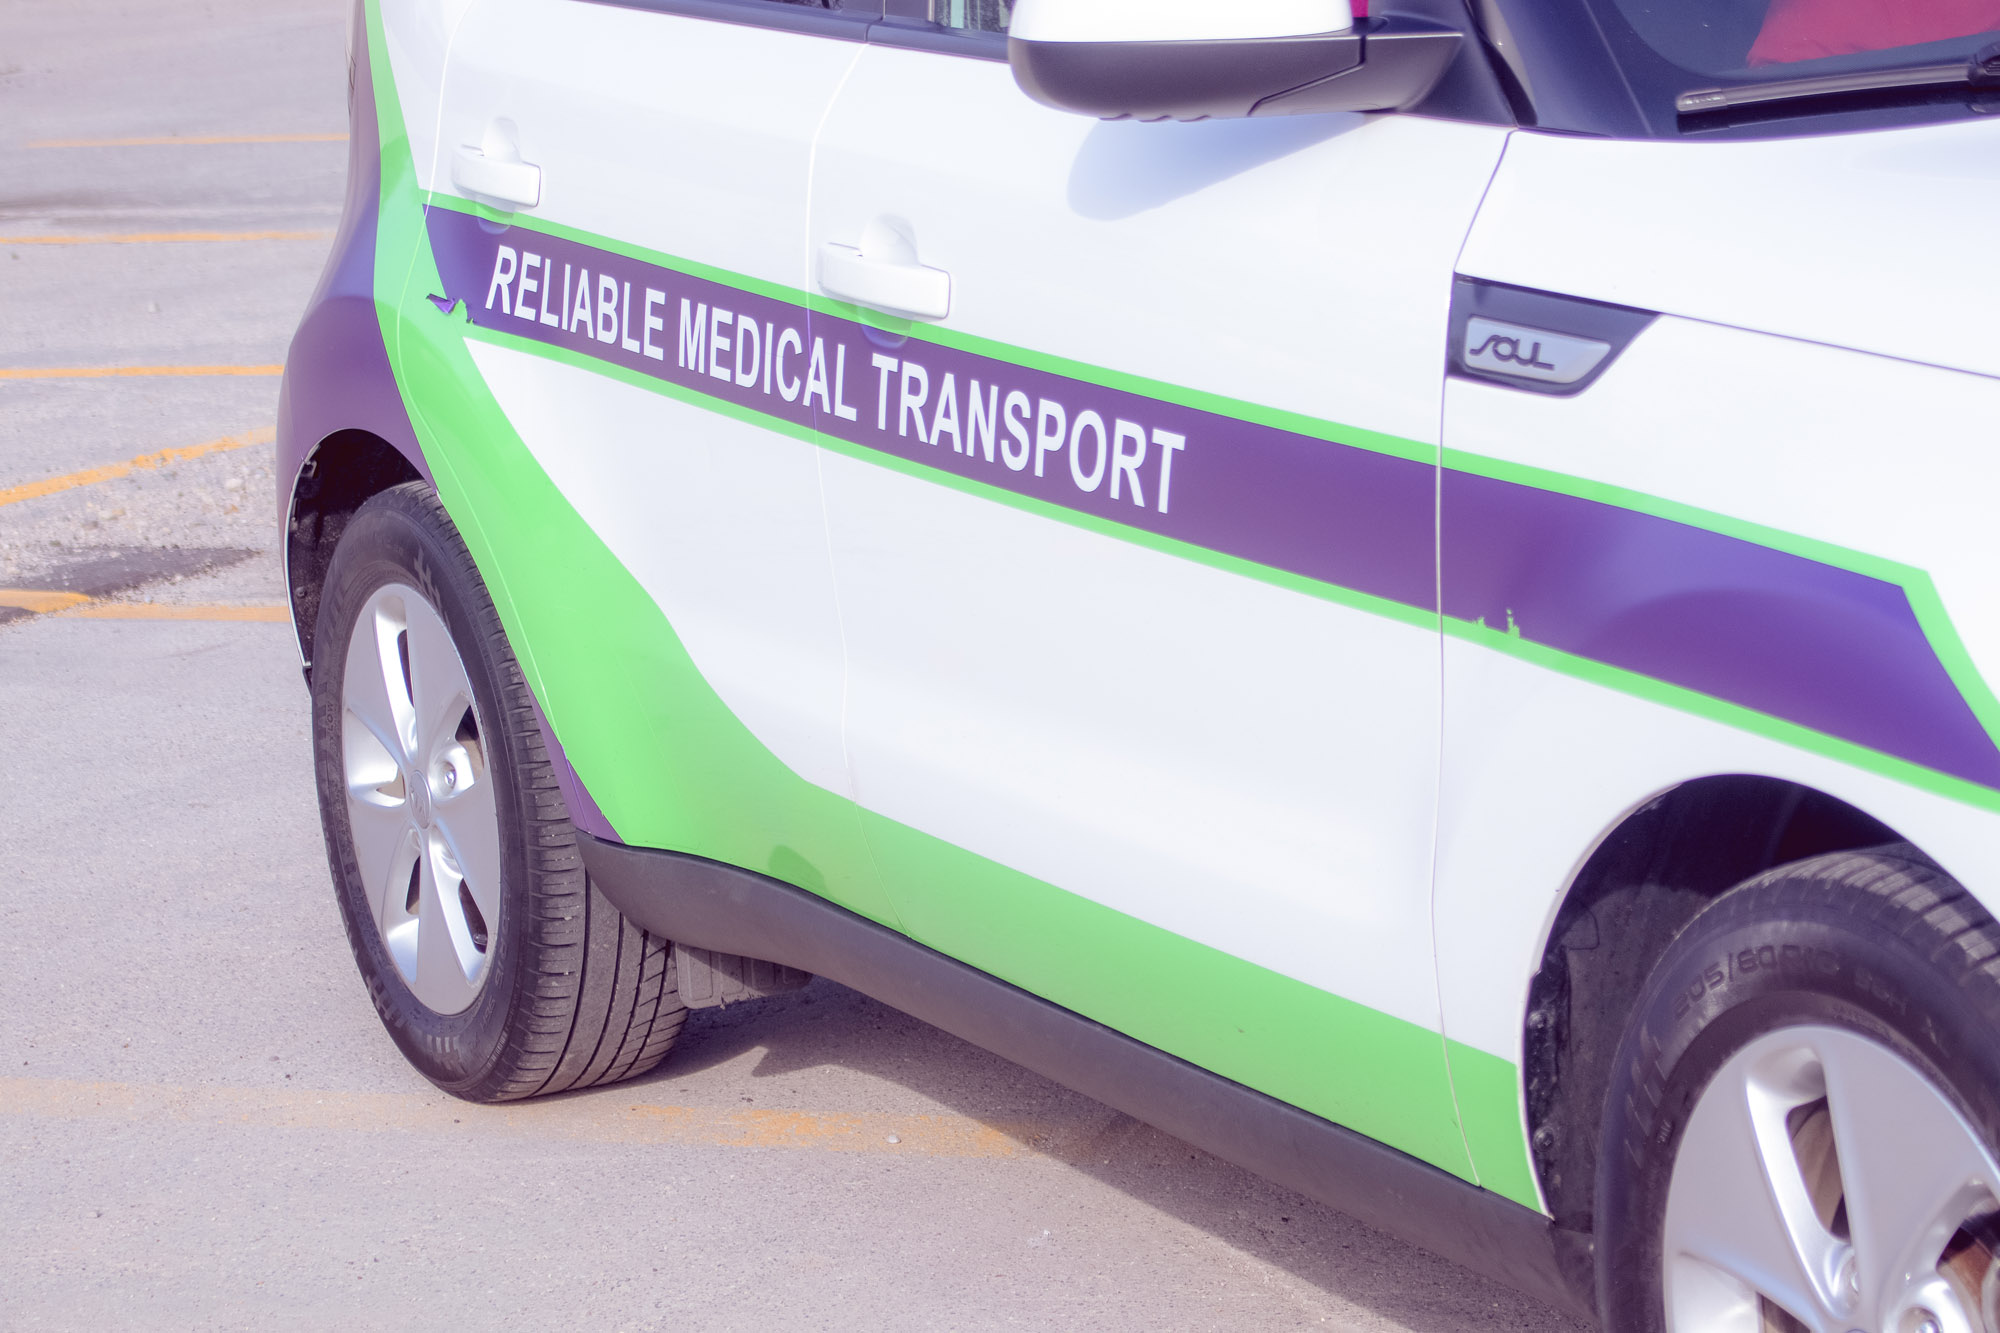 Reliable Medical Transport Van